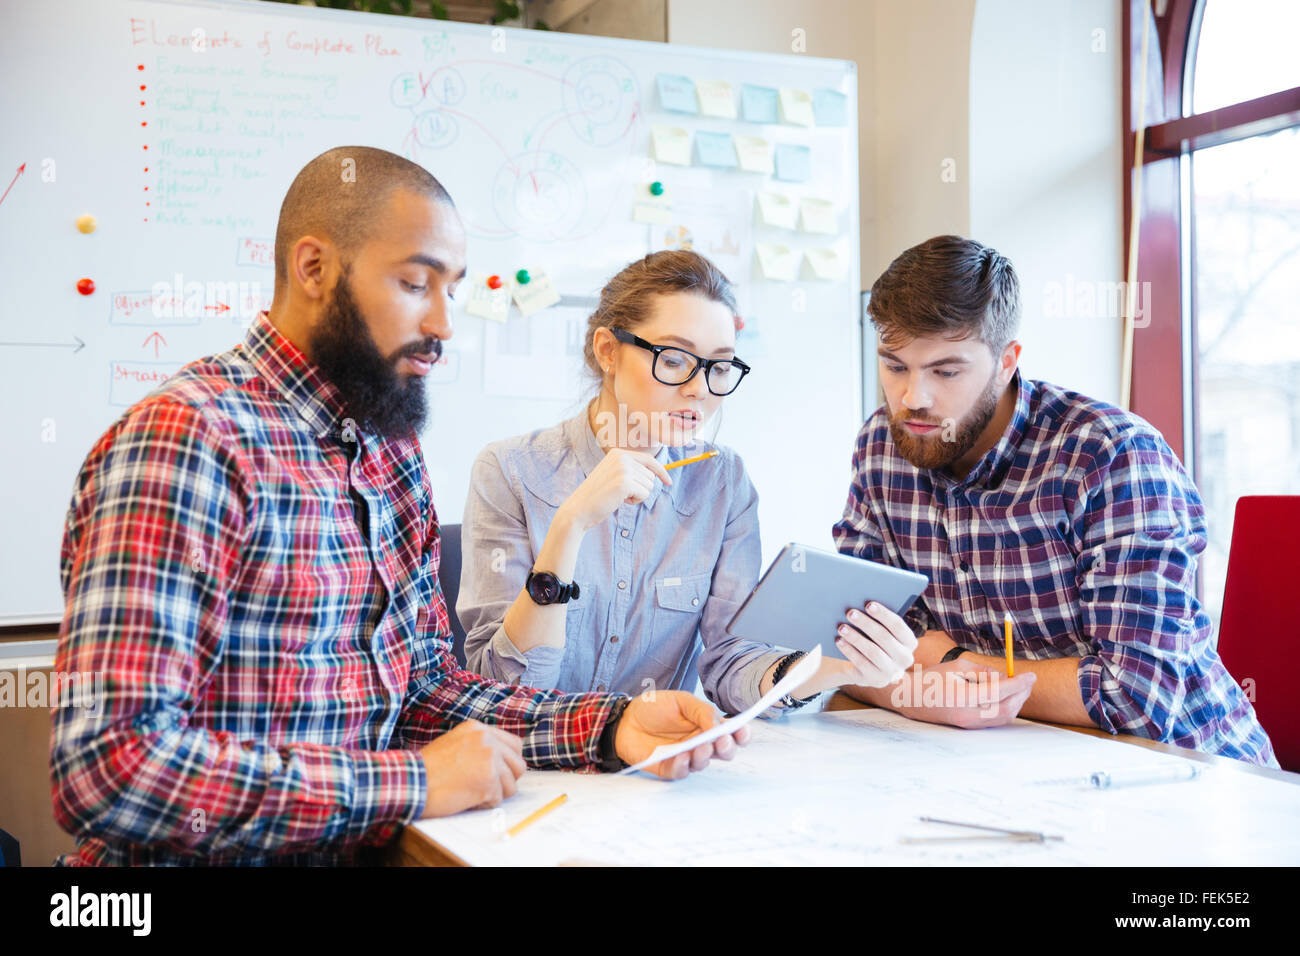 Multiethnic group of young business people working together in office - Stock Image